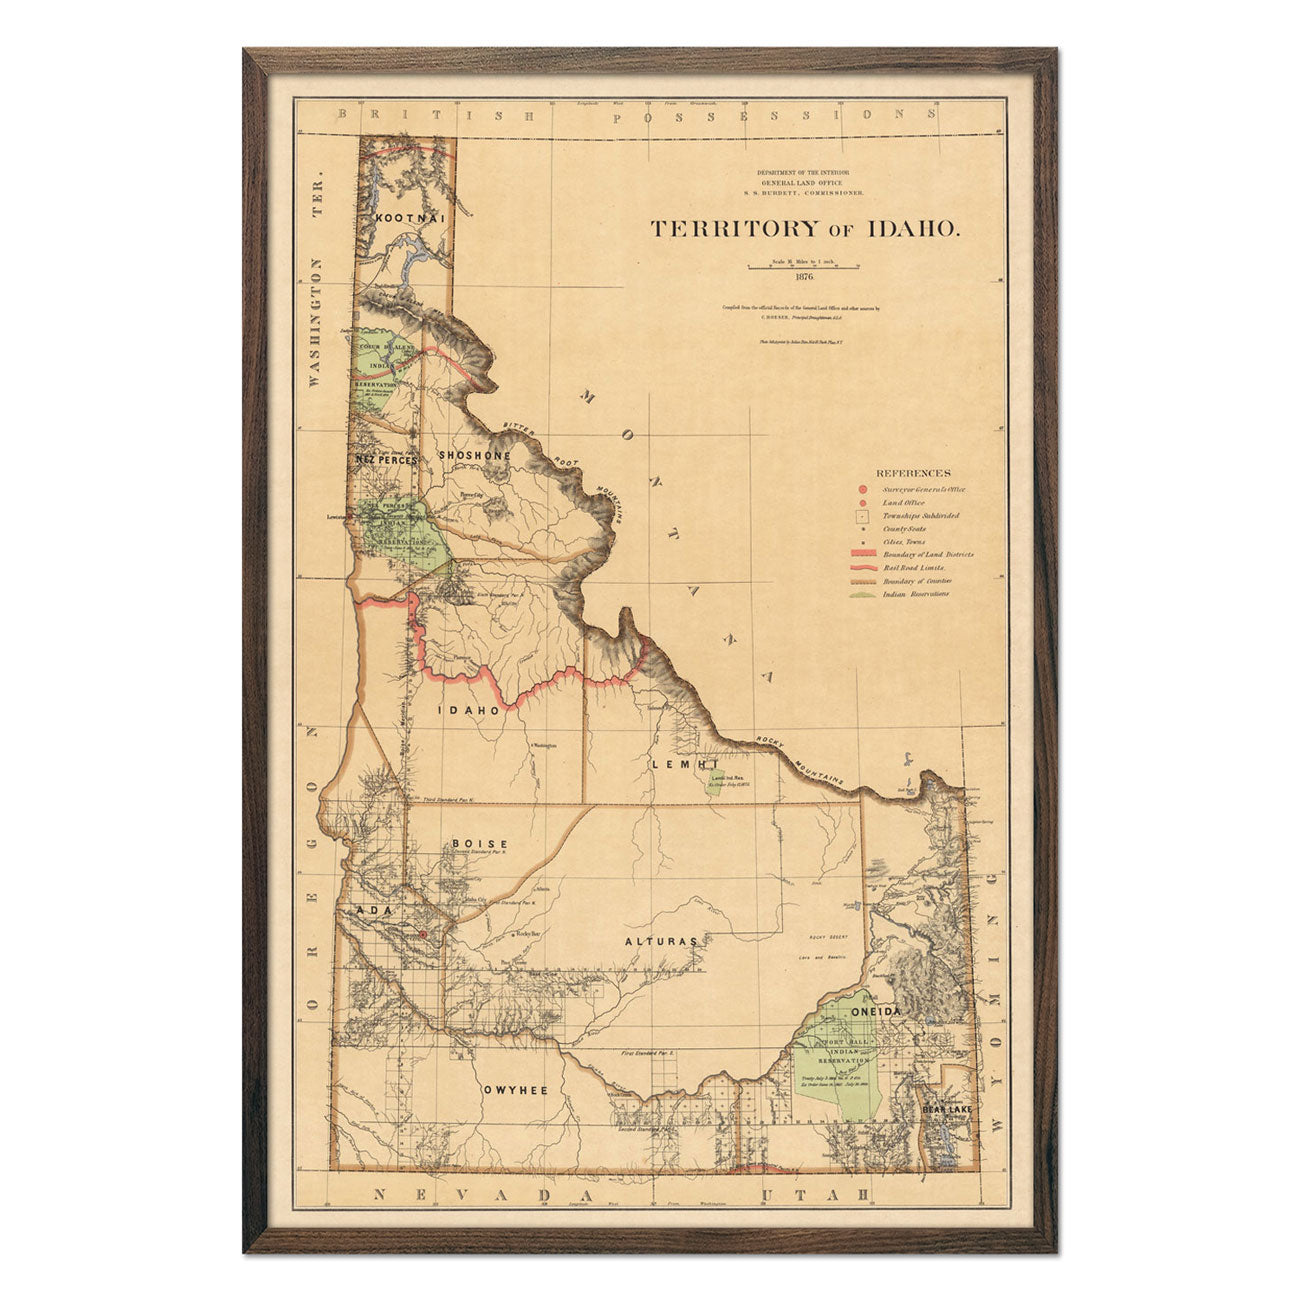 Map of Idaho Territory 1876